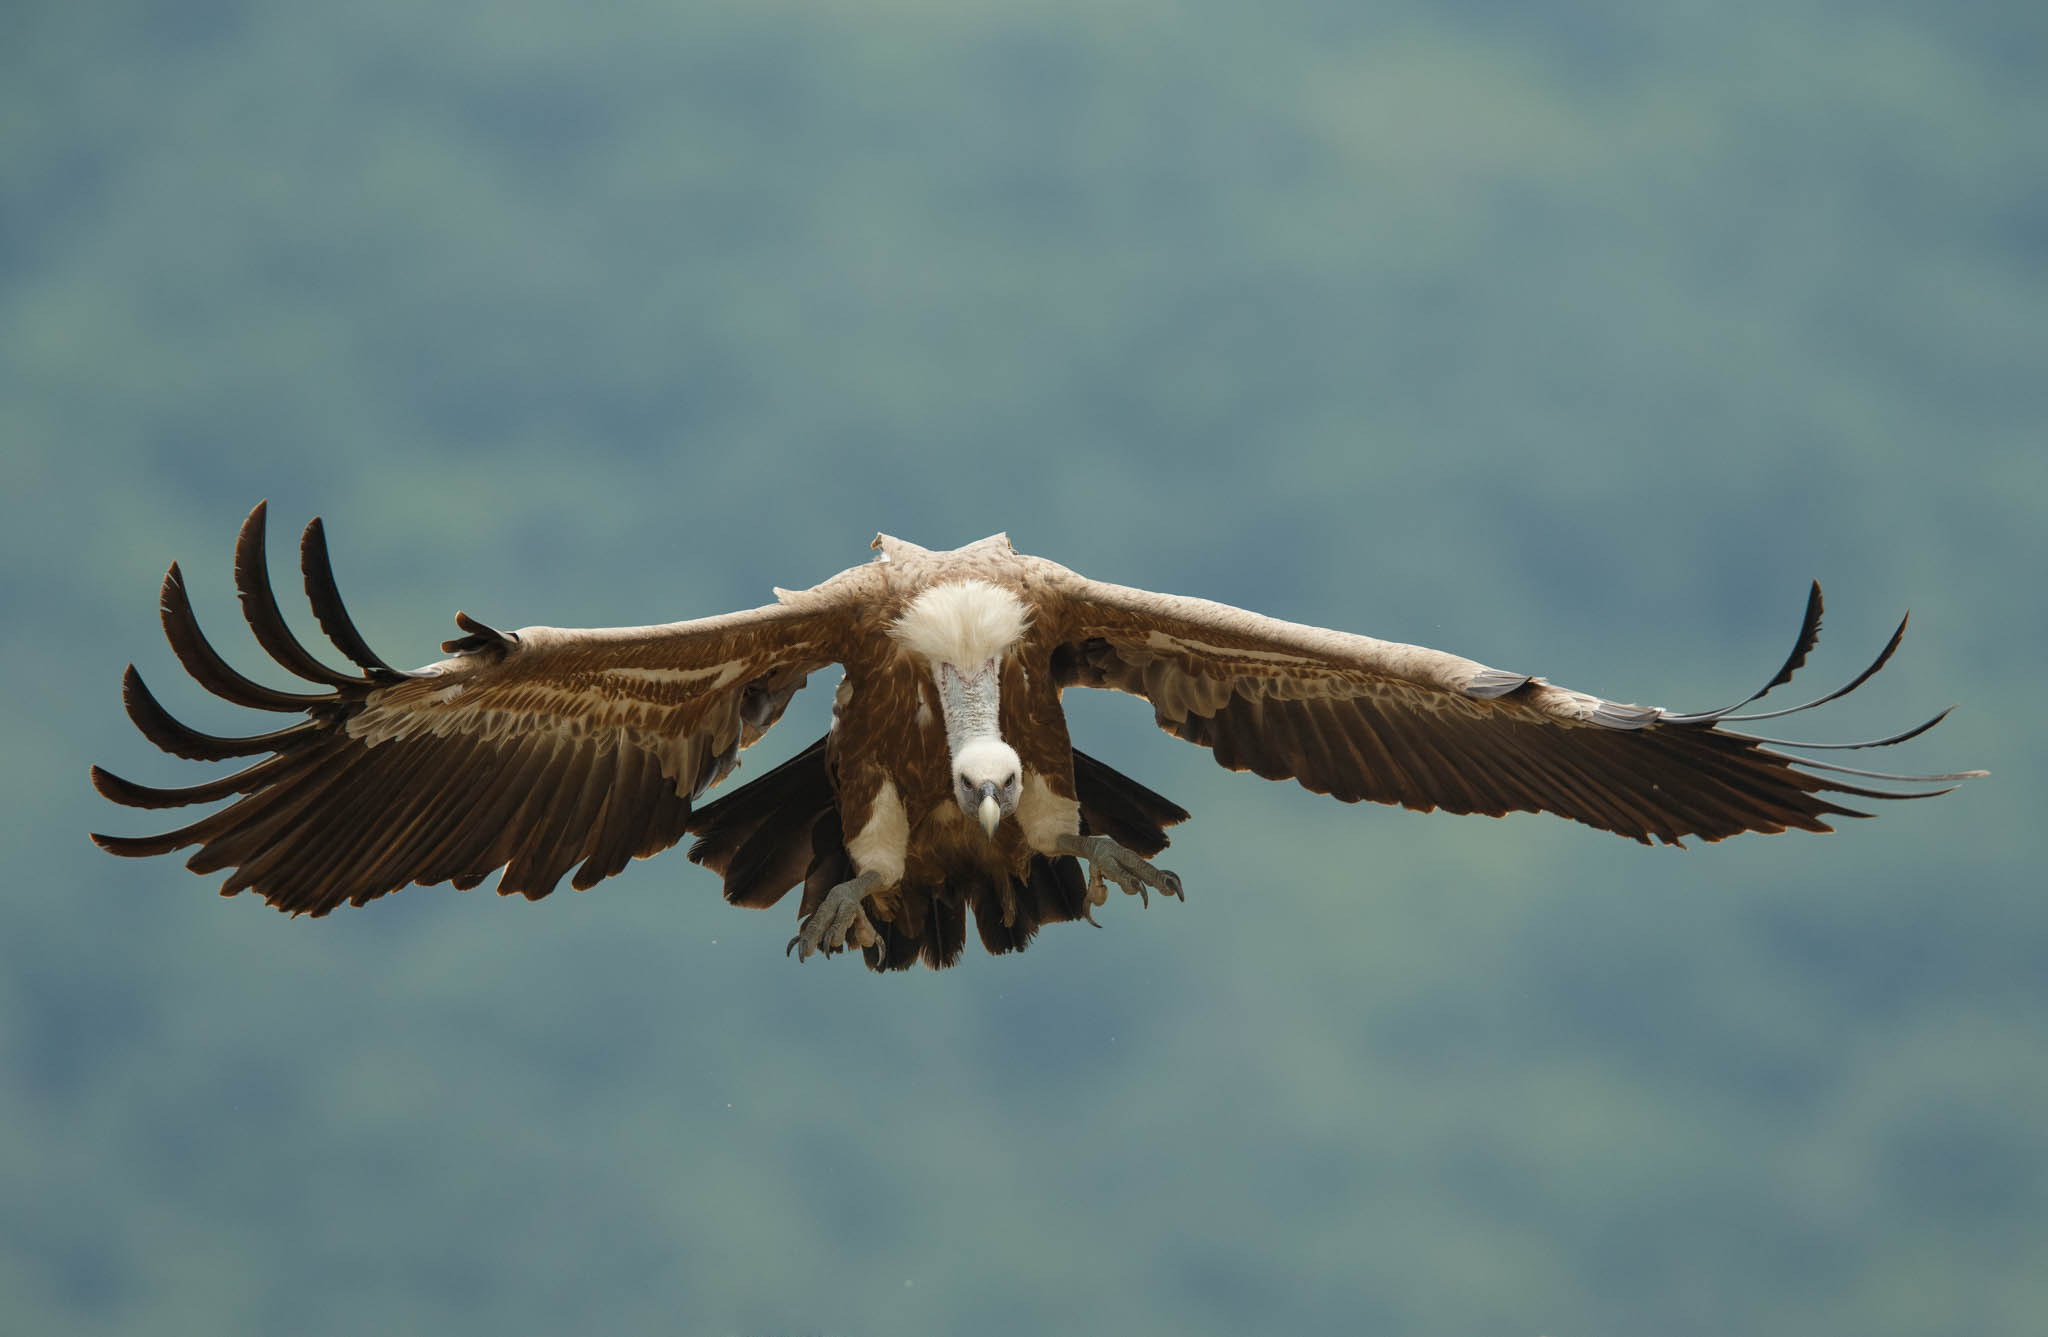 The number of griffon vulture pairs in the Rhodope Mountains rewilding area in Bulgaria has now reached 95.